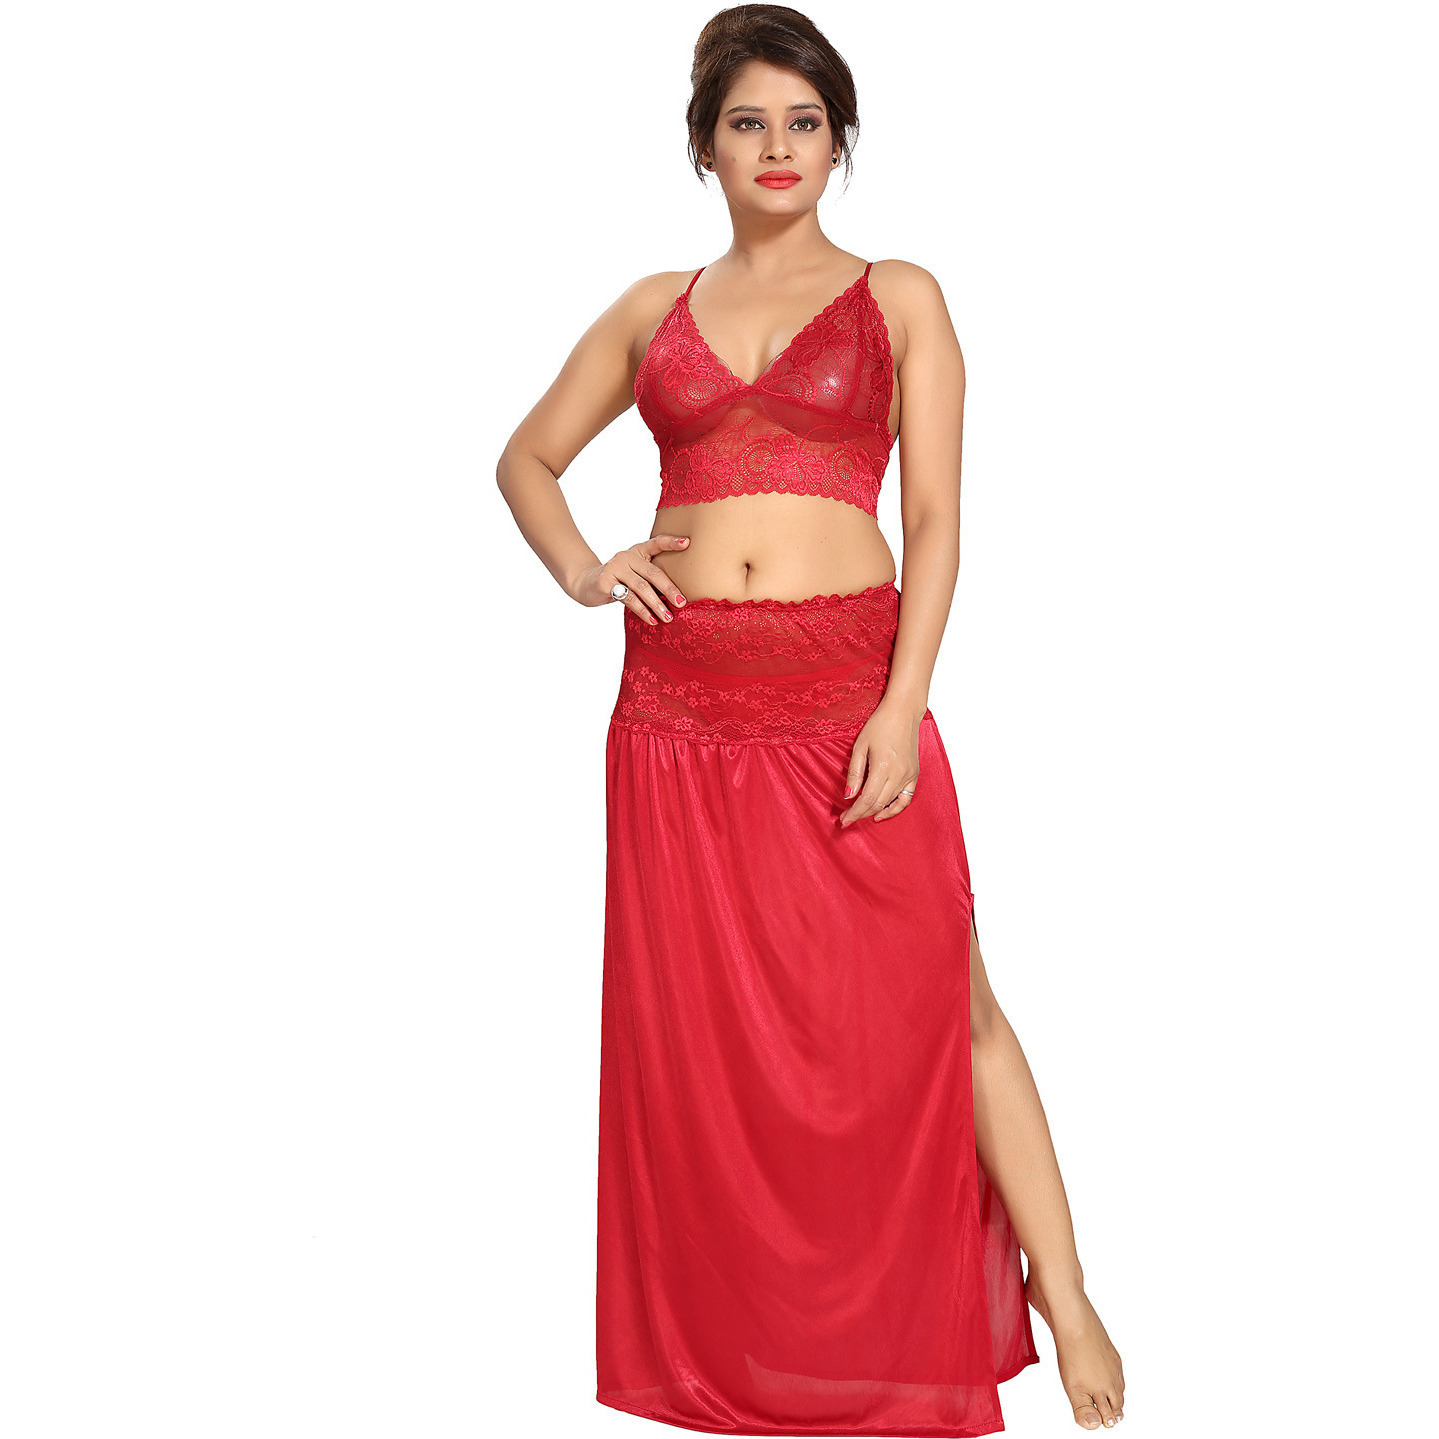 Be You Satin Red Lacey Crop top & Skirt Nighty Set for Women